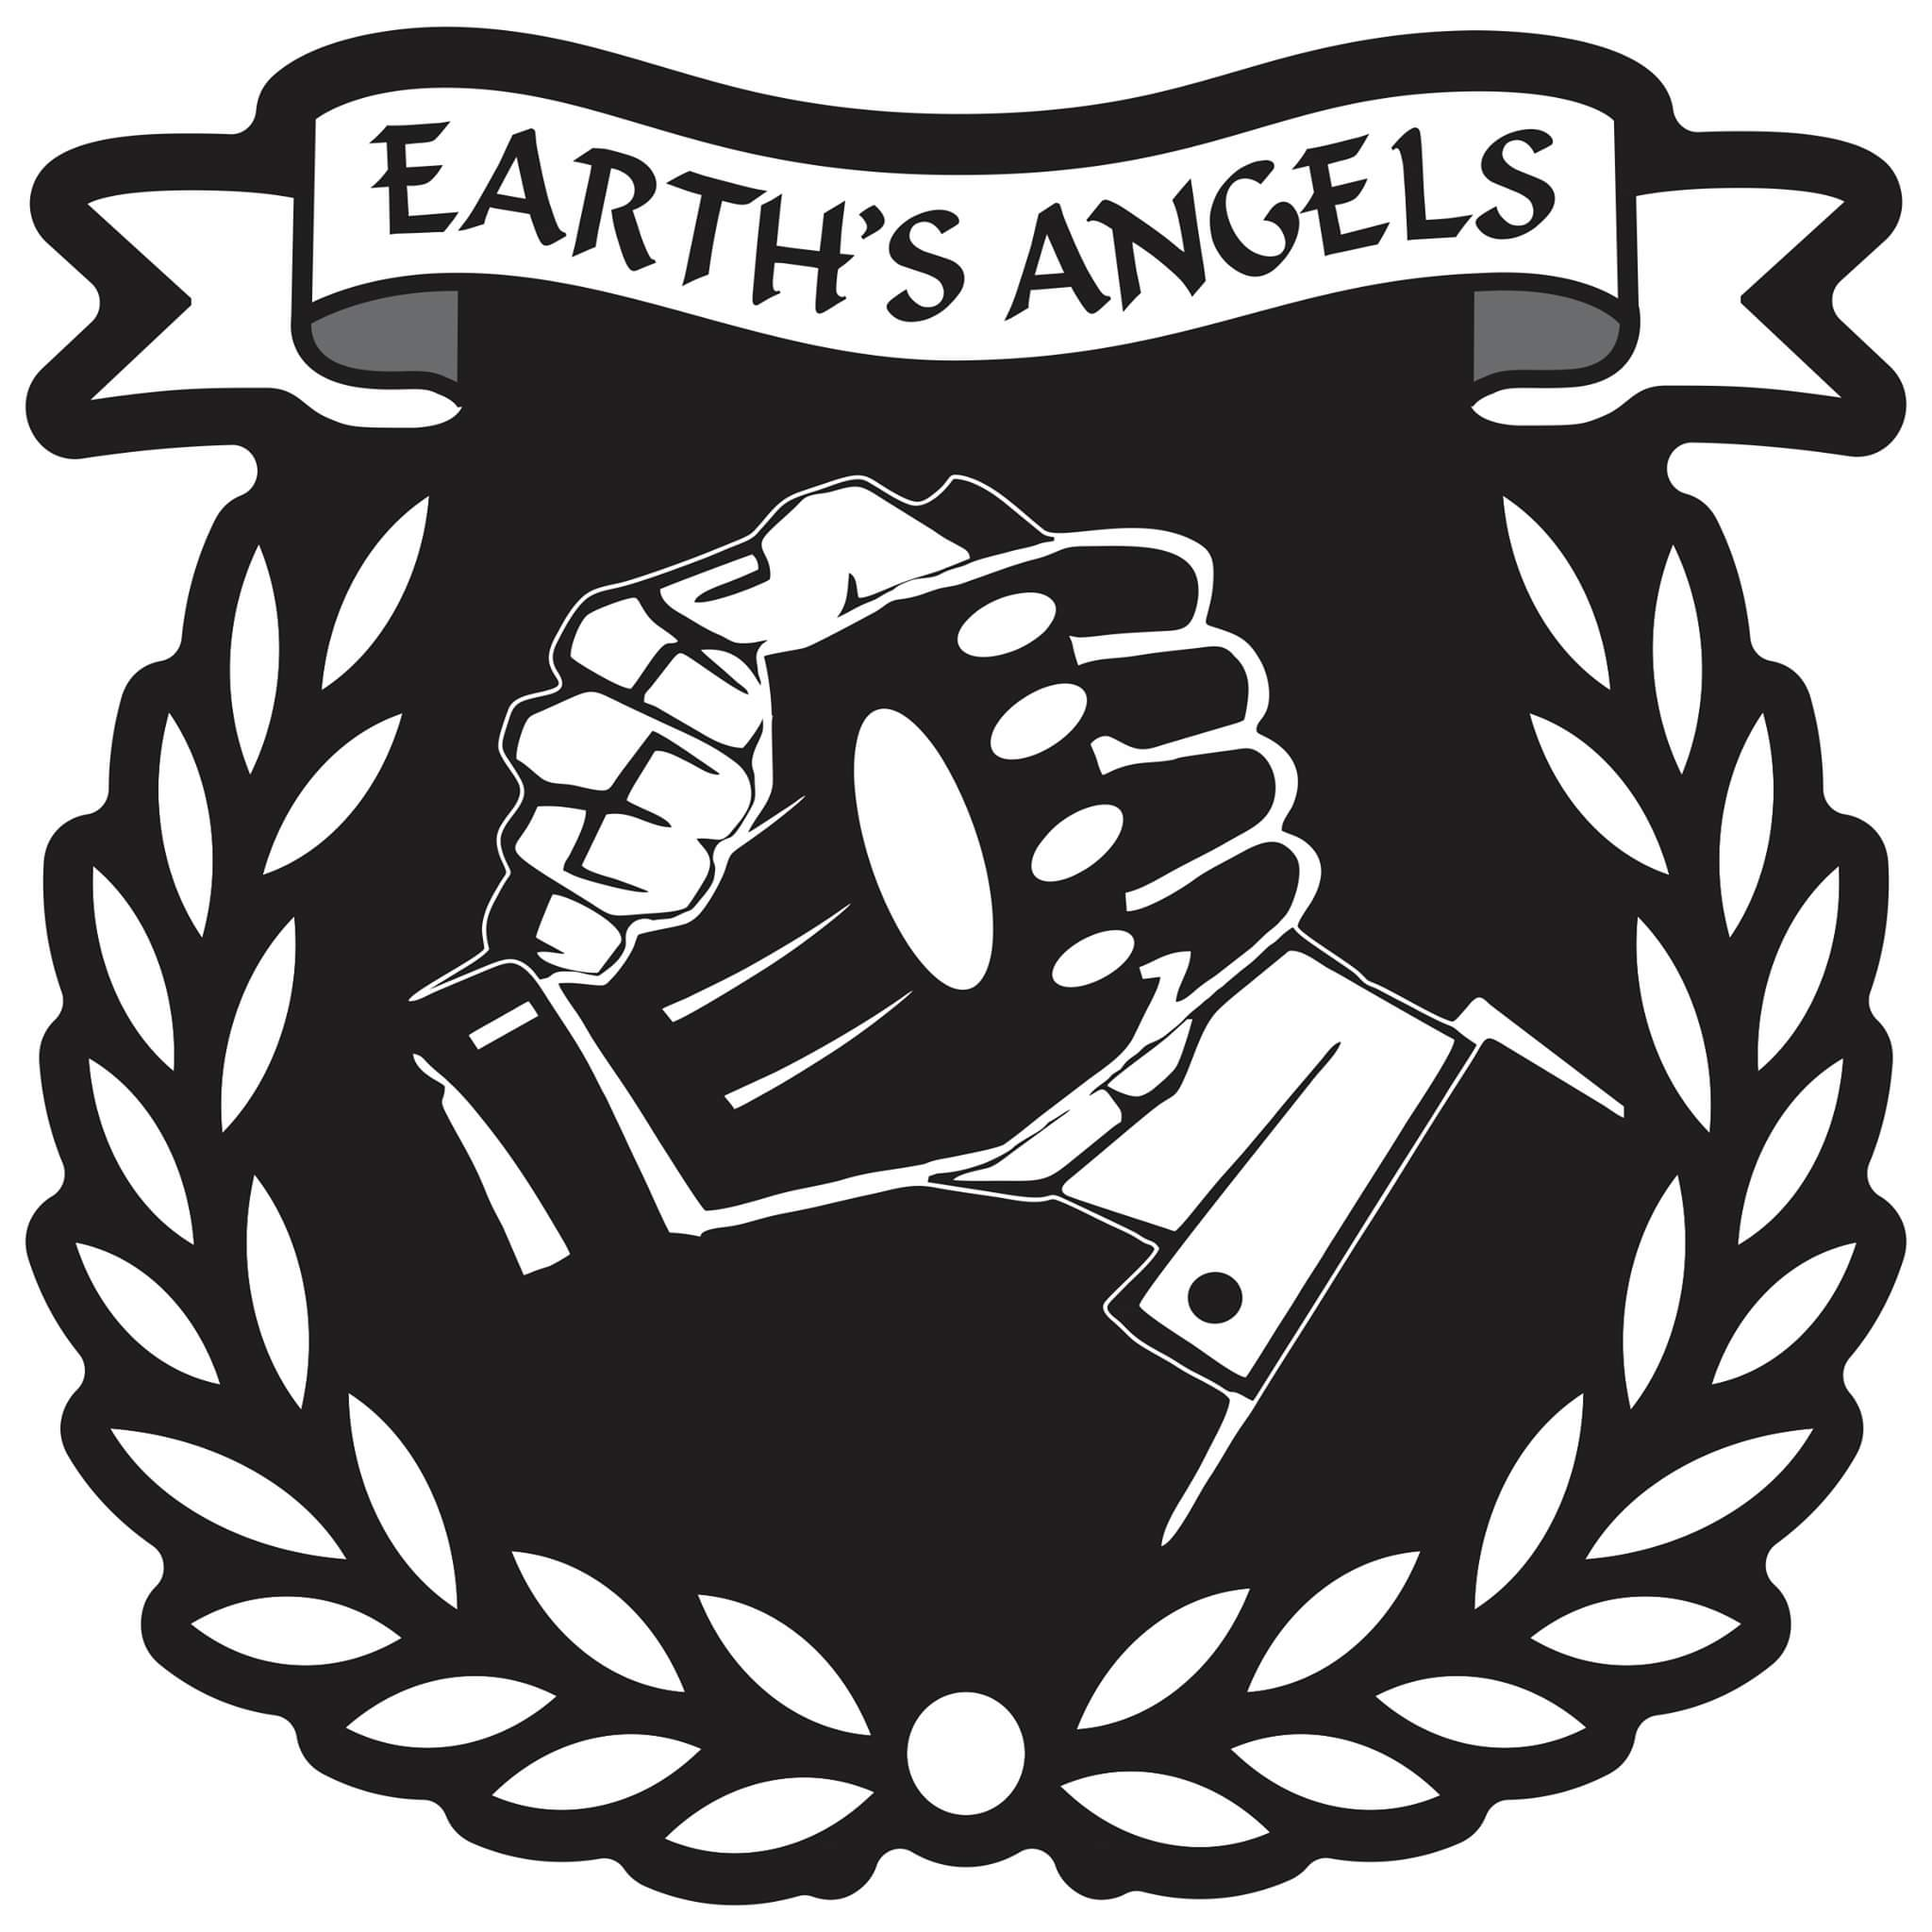 Asociatia Earth's Angels logo